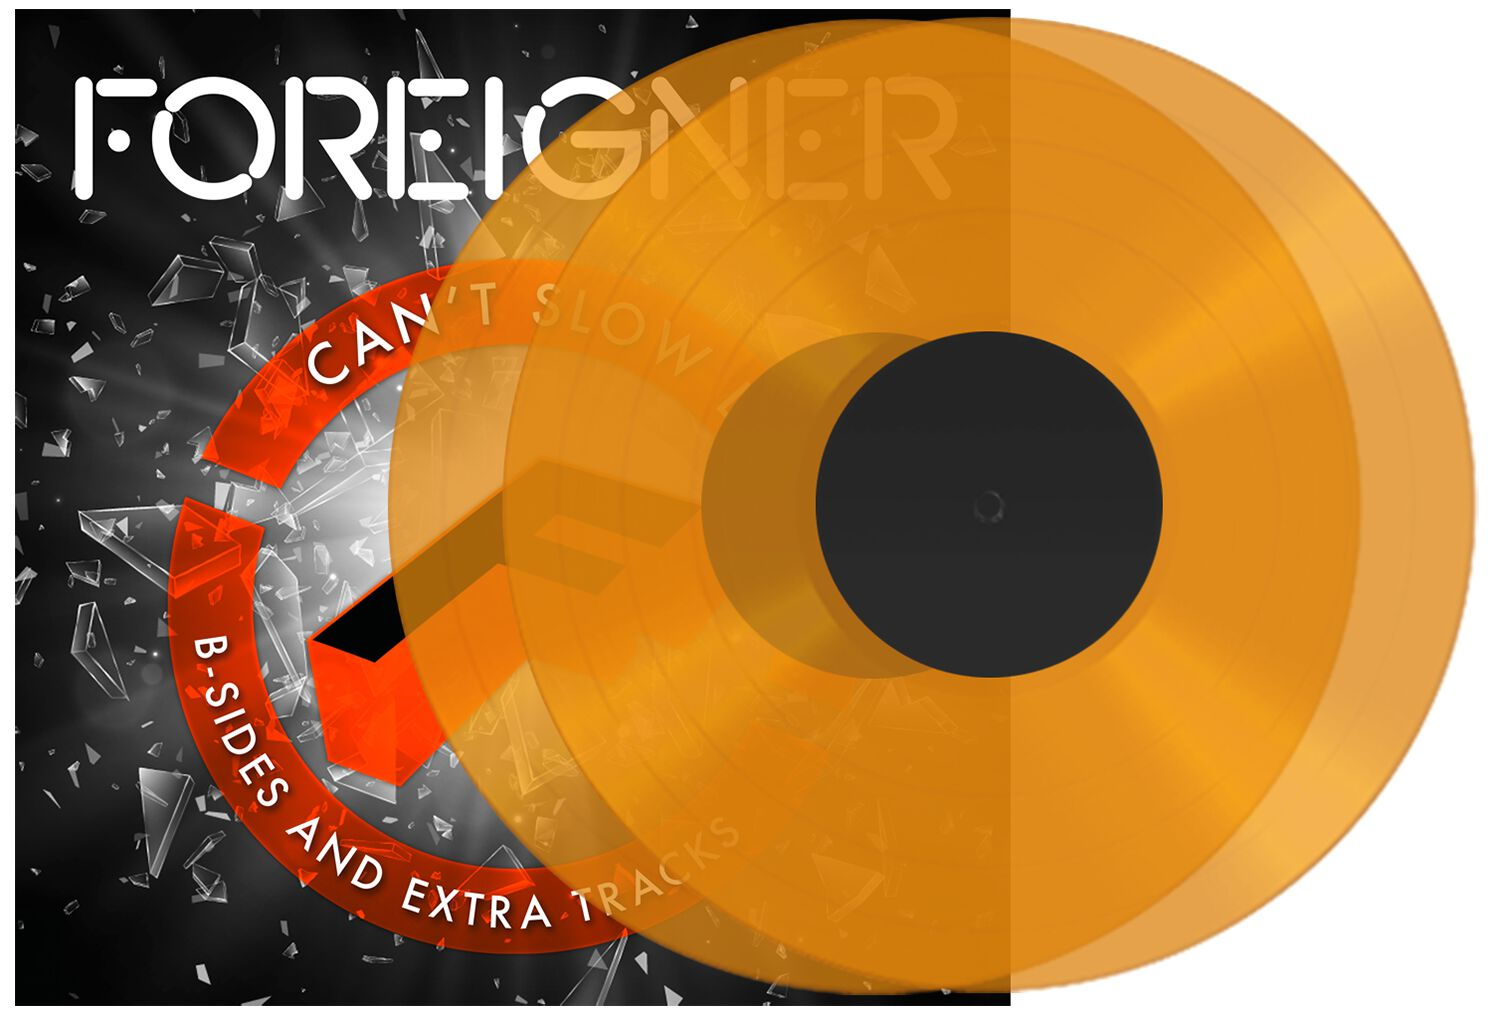 Music, Games & Video Foreigner Can't slow down & B-Sides & Extra Tracks 2-LP orange